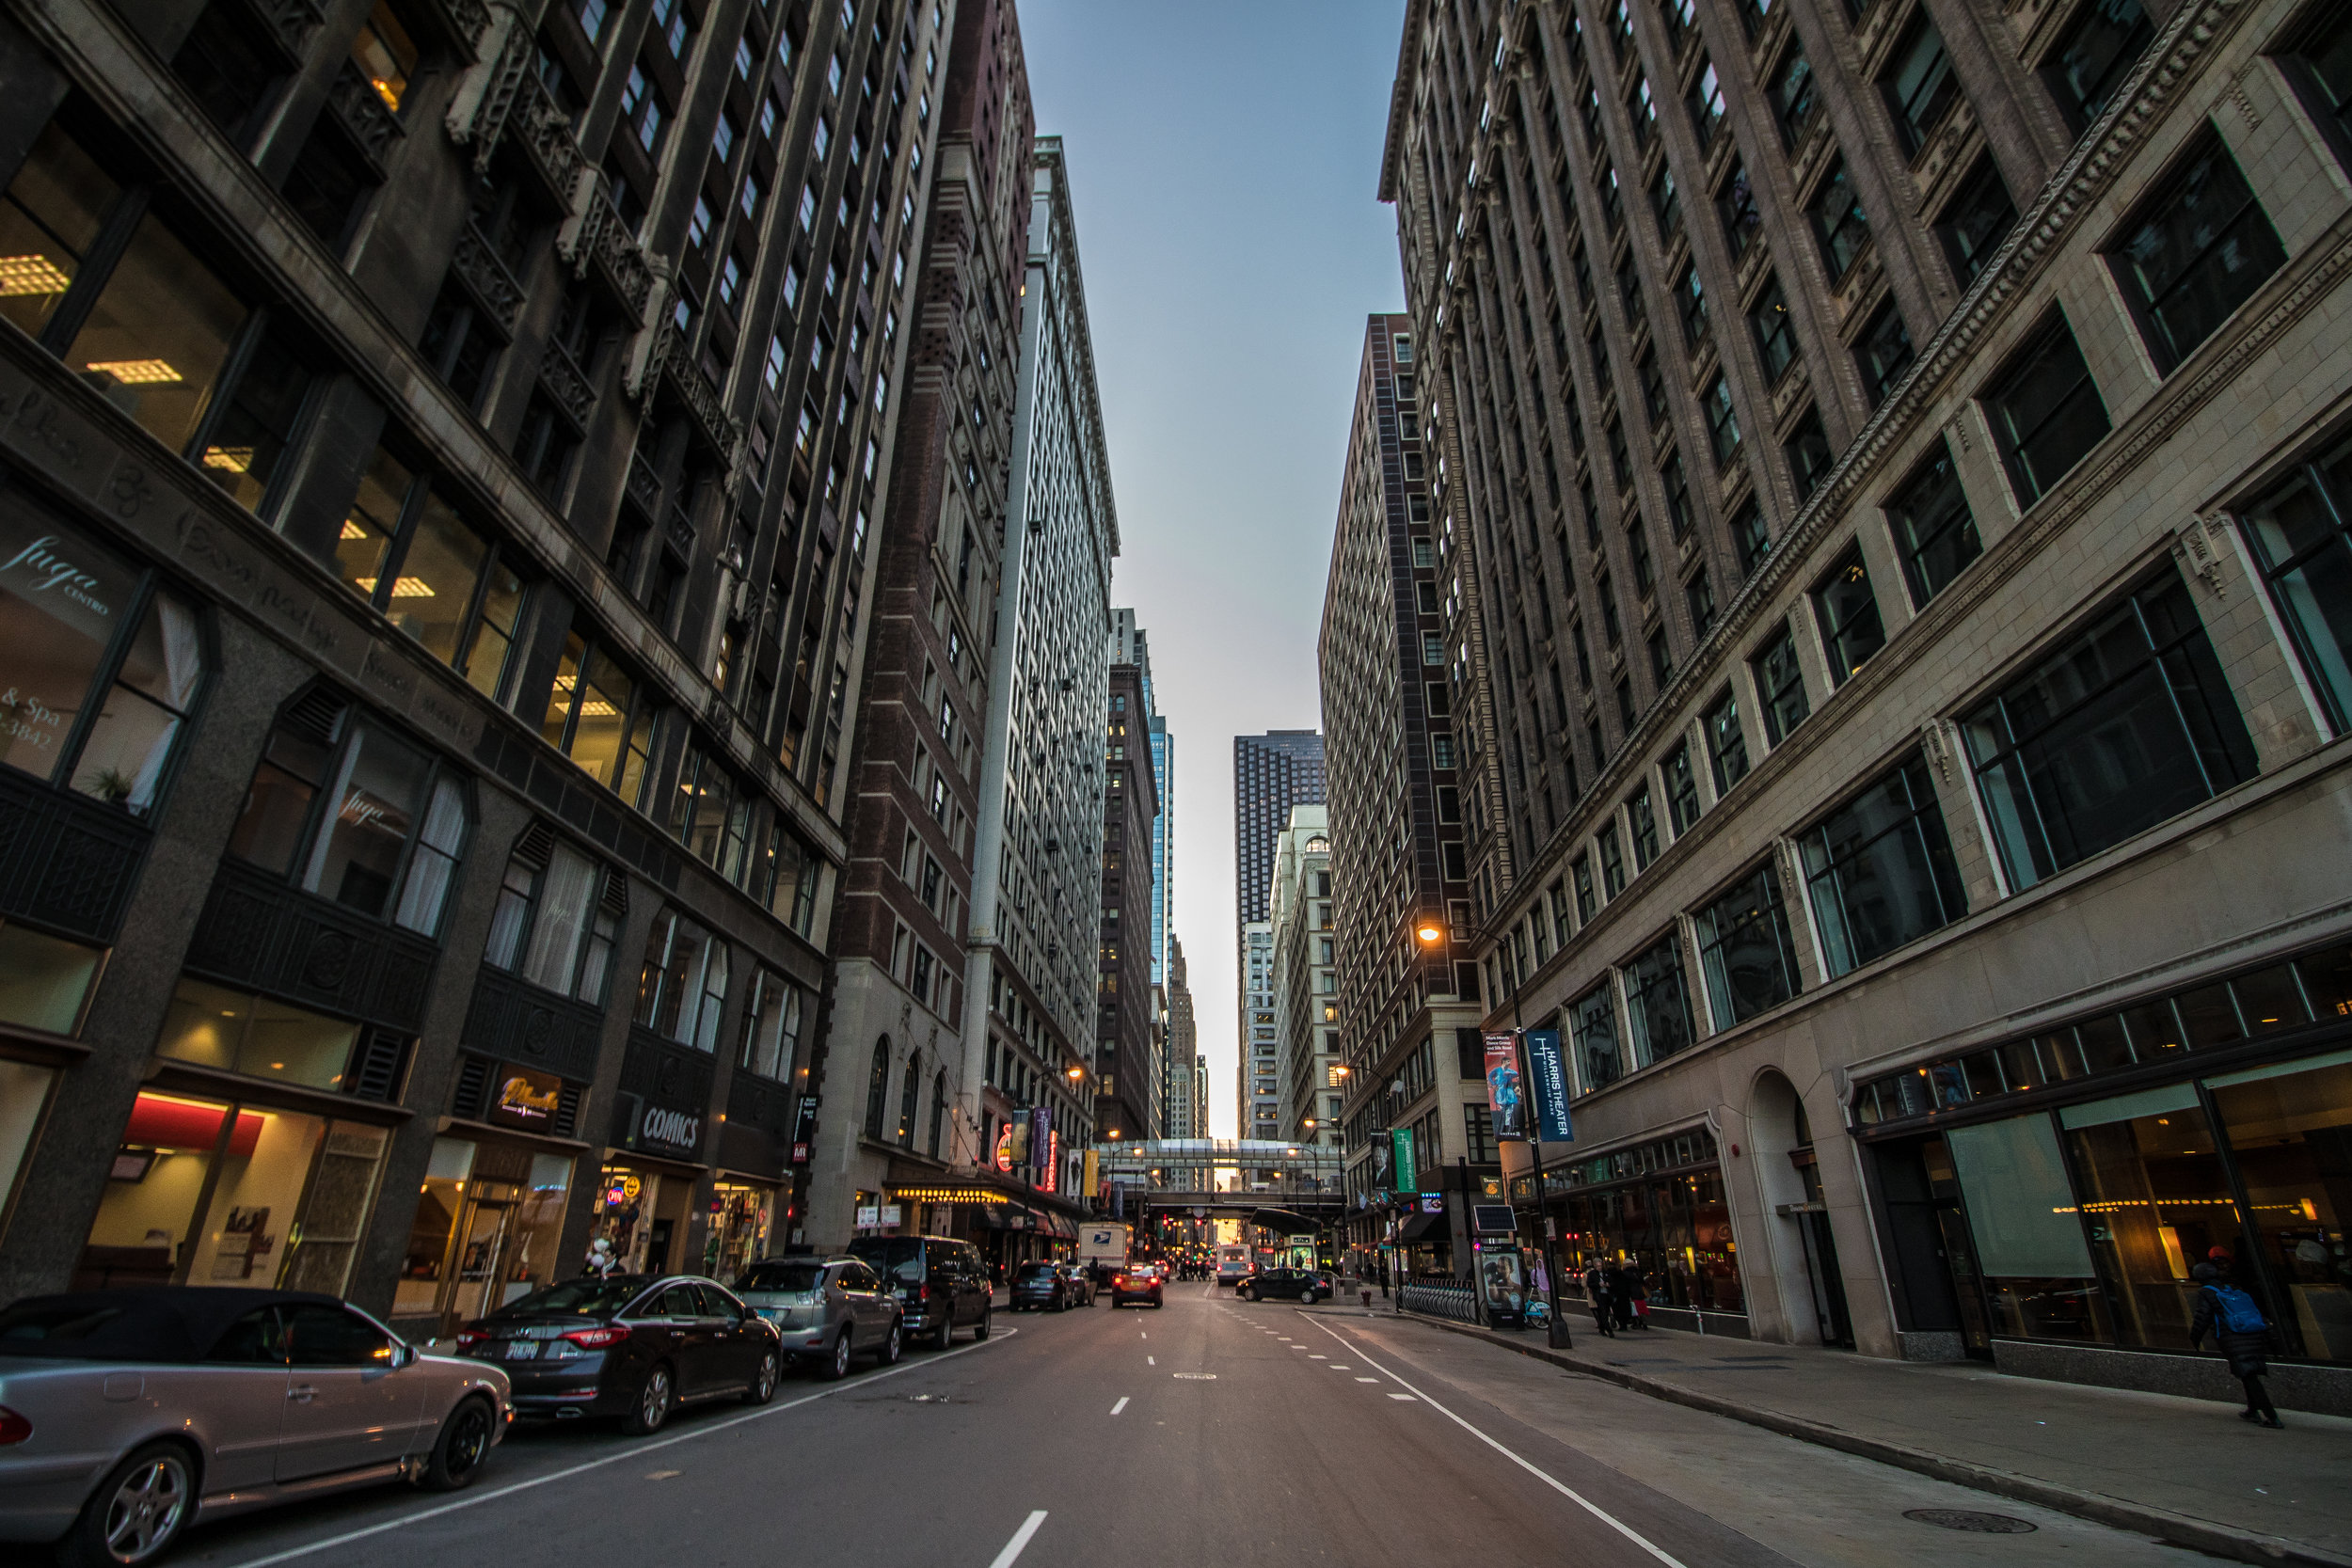 South Loop - The South Loop in Chicago is such a vivid mix of attractions and stories that the neighbourhood tends to be seen as many different things to many different people. It is also the heart of Chicago's business with a vast amount of places to go, shop and visit.